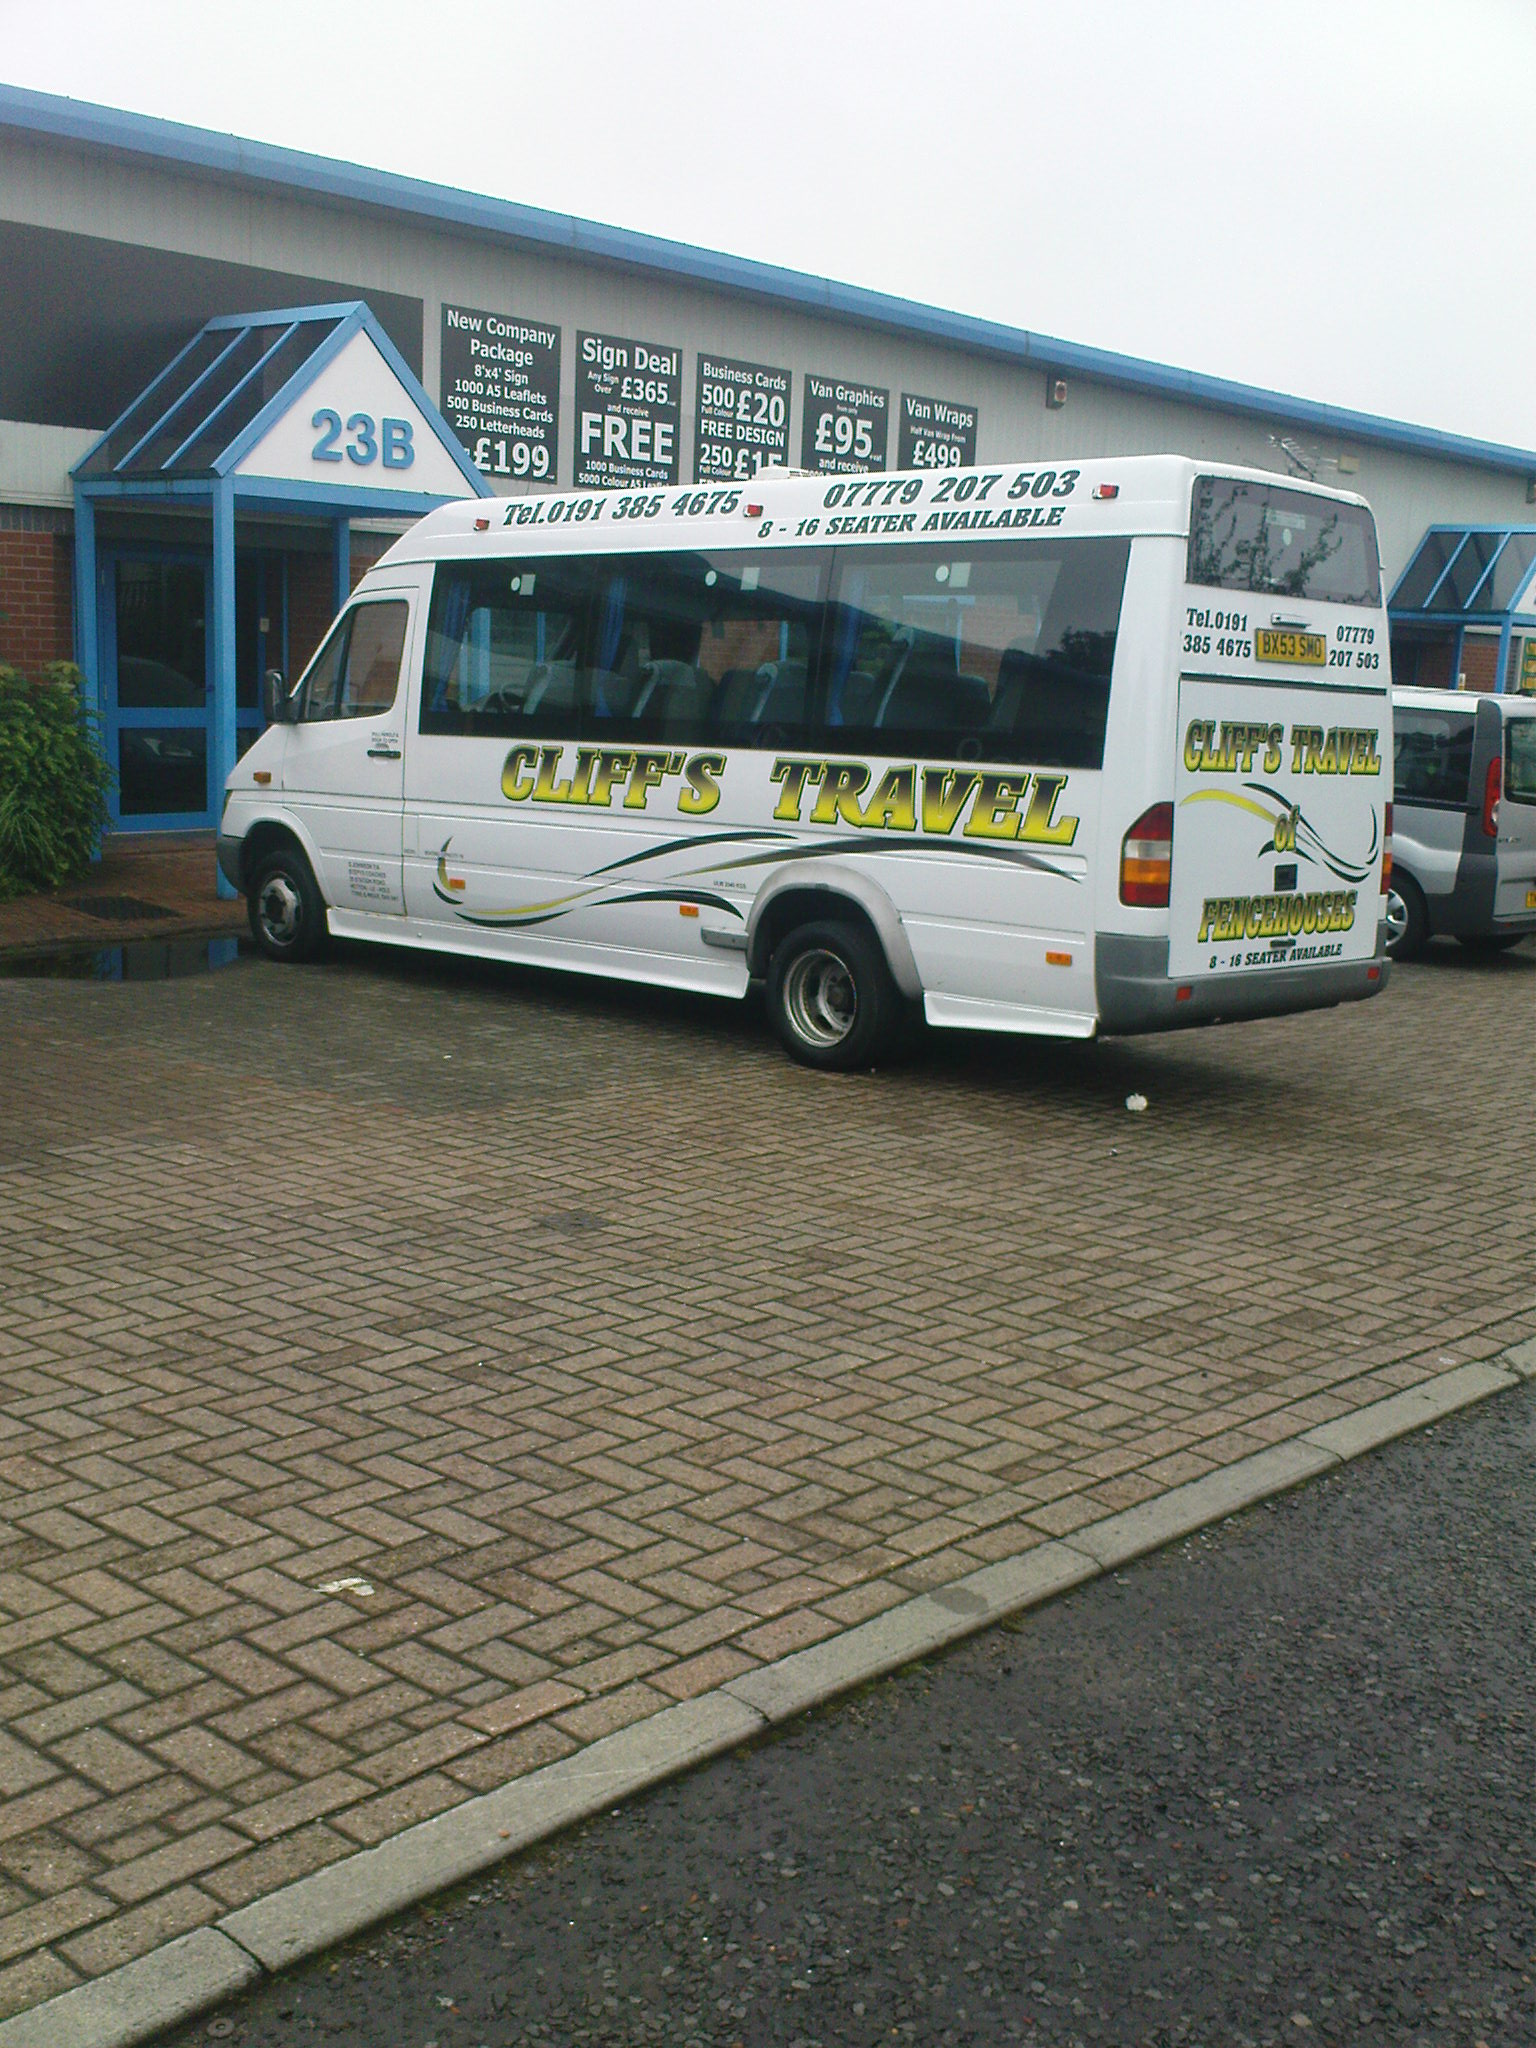 cliffs taxis colliery row houghton le spring taxi opening times and reviews. Black Bedroom Furniture Sets. Home Design Ideas